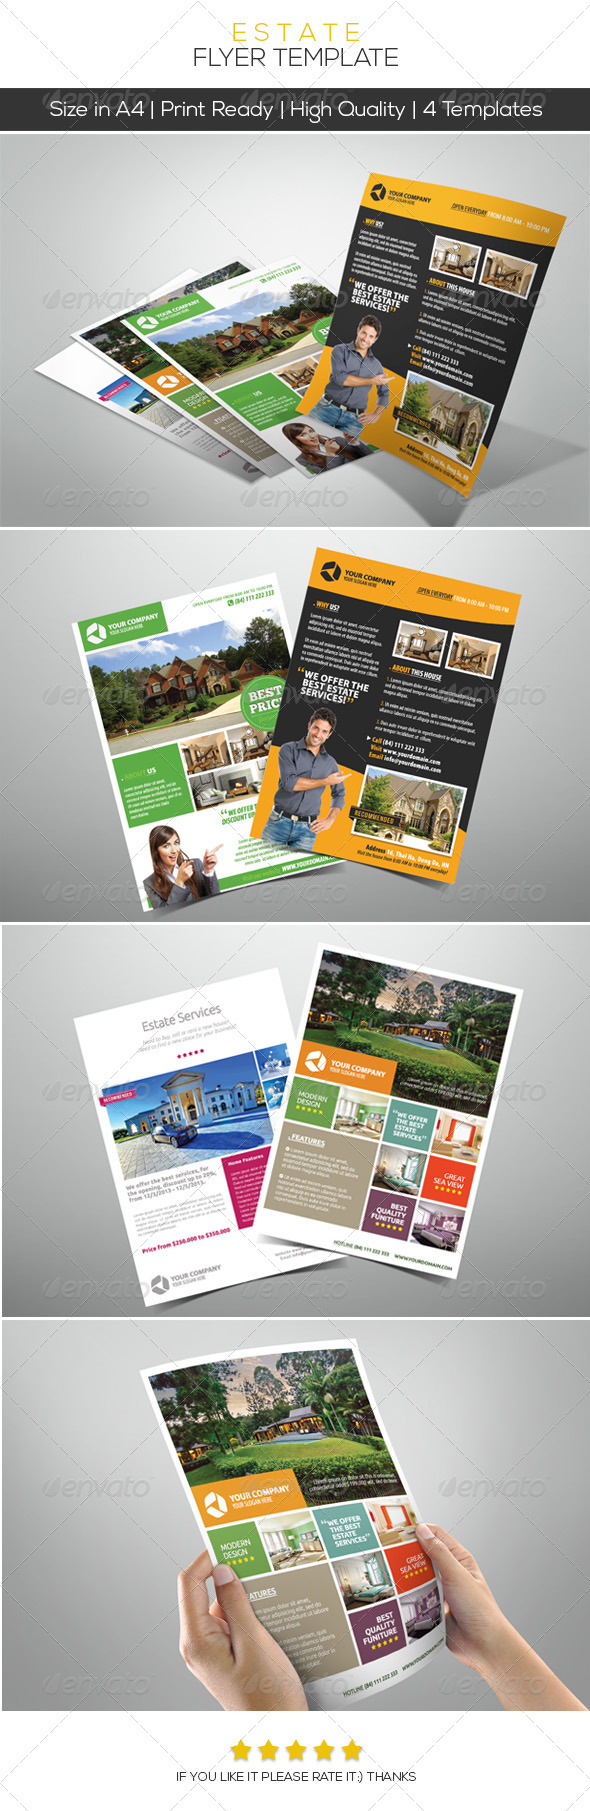 Premium Estate Flyers - Commerce Flyers